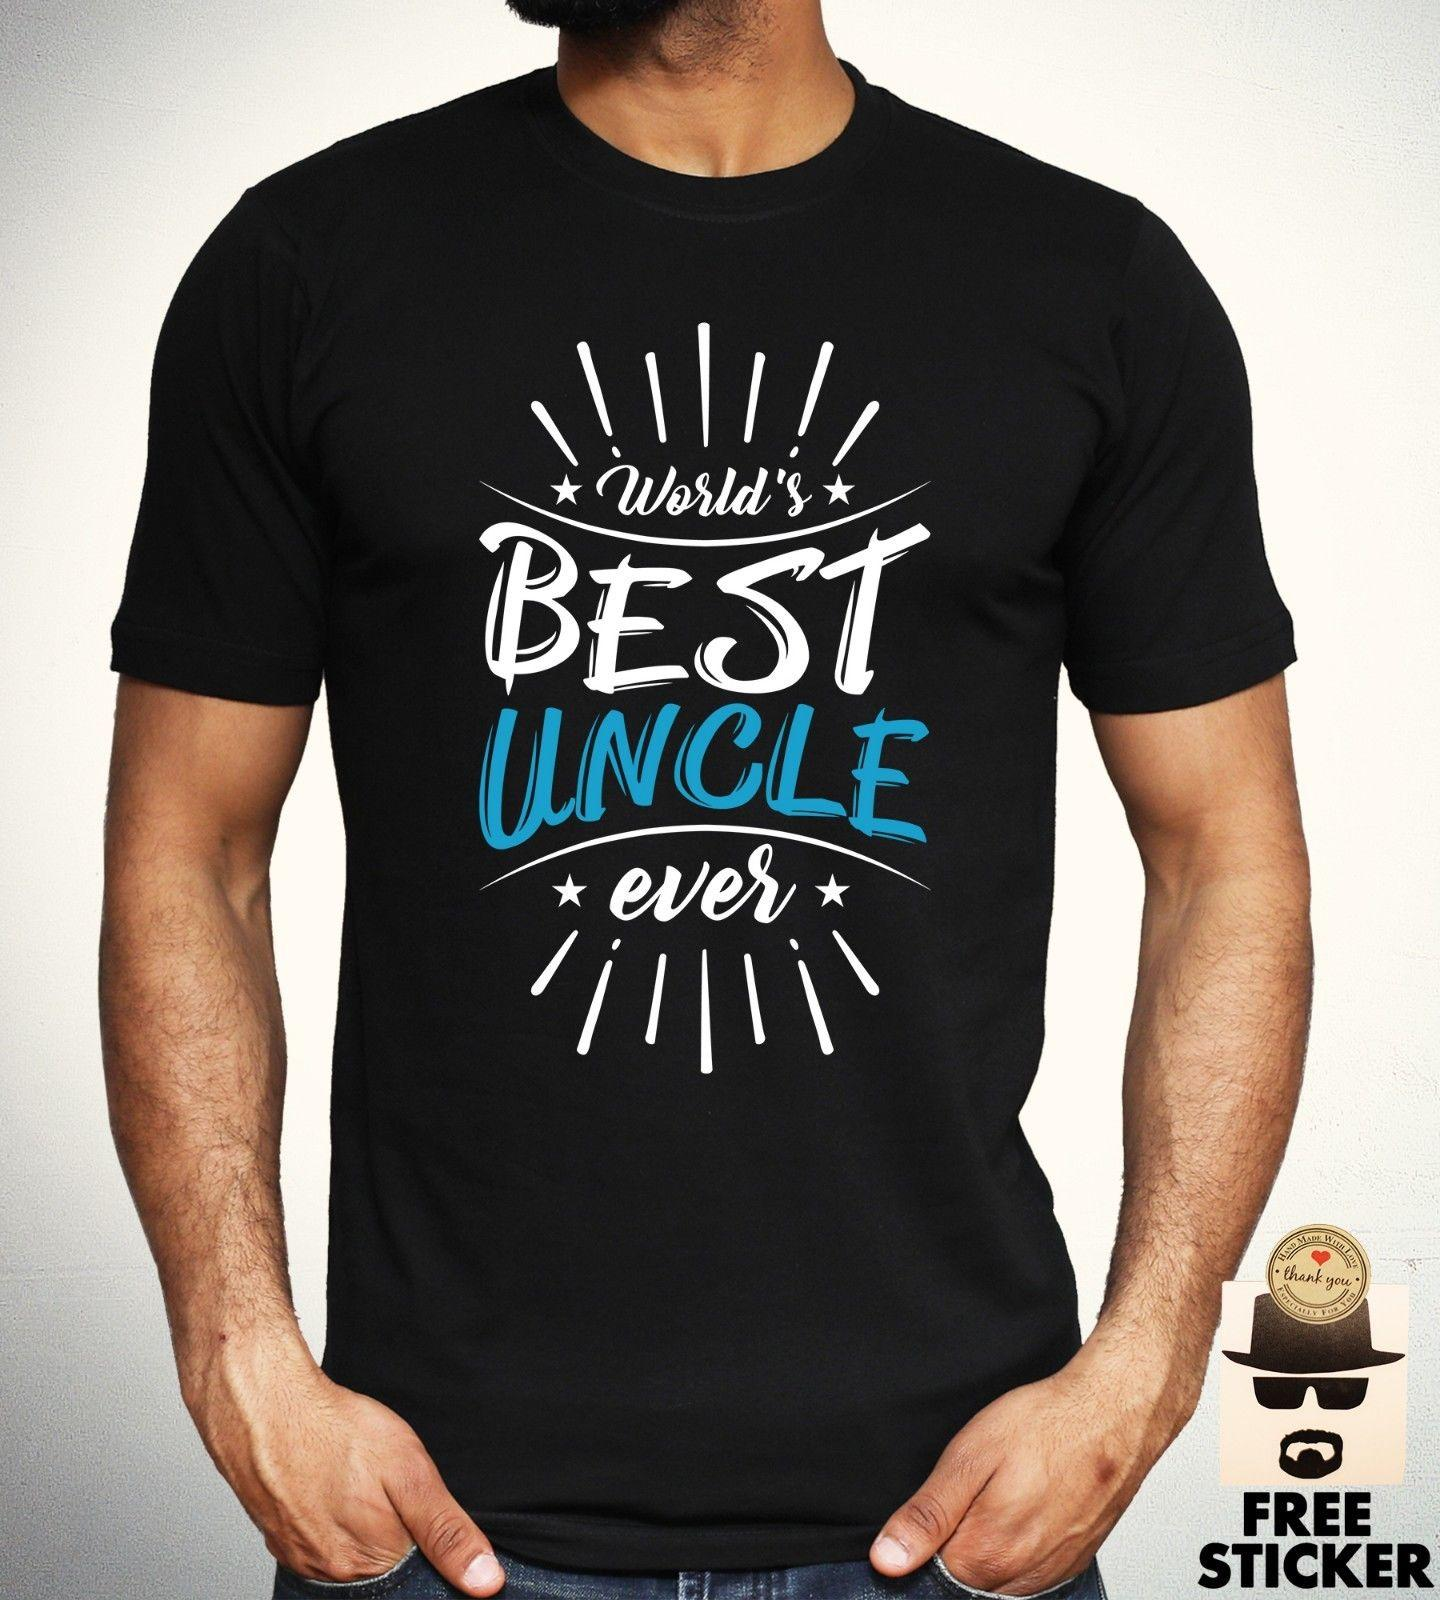 Worlds Best Uncle T Shirt Family Cool Birthday Gift Present Tee Mens Top S XXXL The Shirts Designer From Goodclothes79 1148